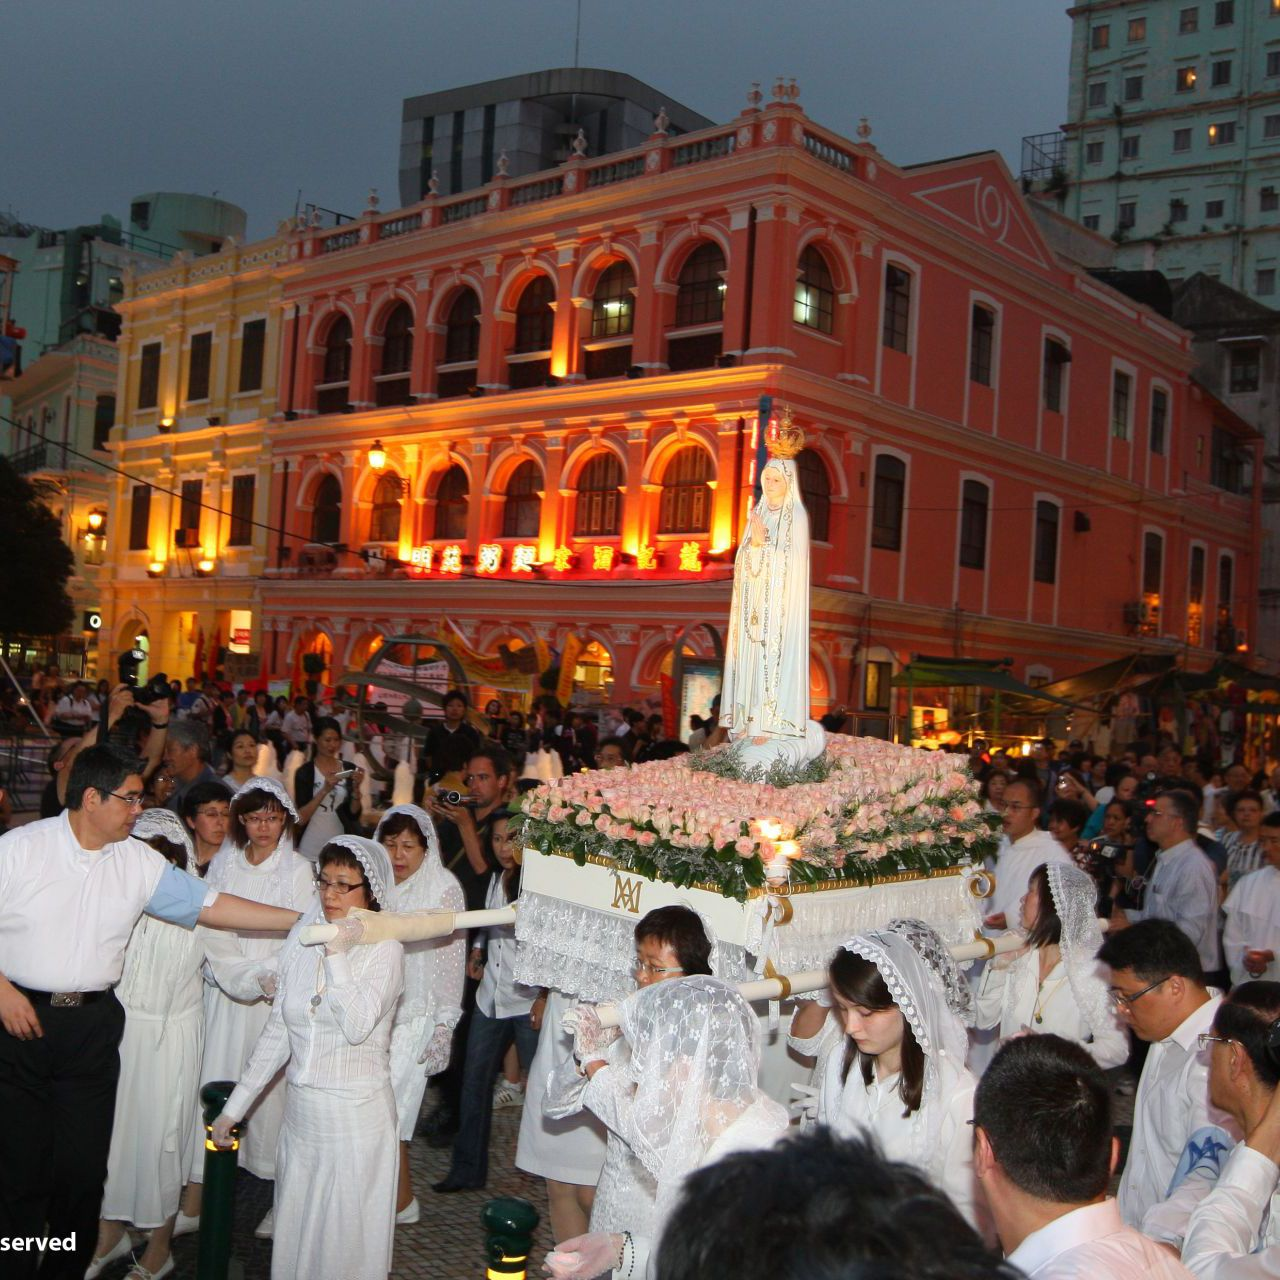 May 13. Annual procession of devotees, from S. Domingos Church to the Penha Chapel where an open-air mass is said. The event commemorated the miracle of Fátima in Portugal in 1917. #macau #visitmacau #travel2next